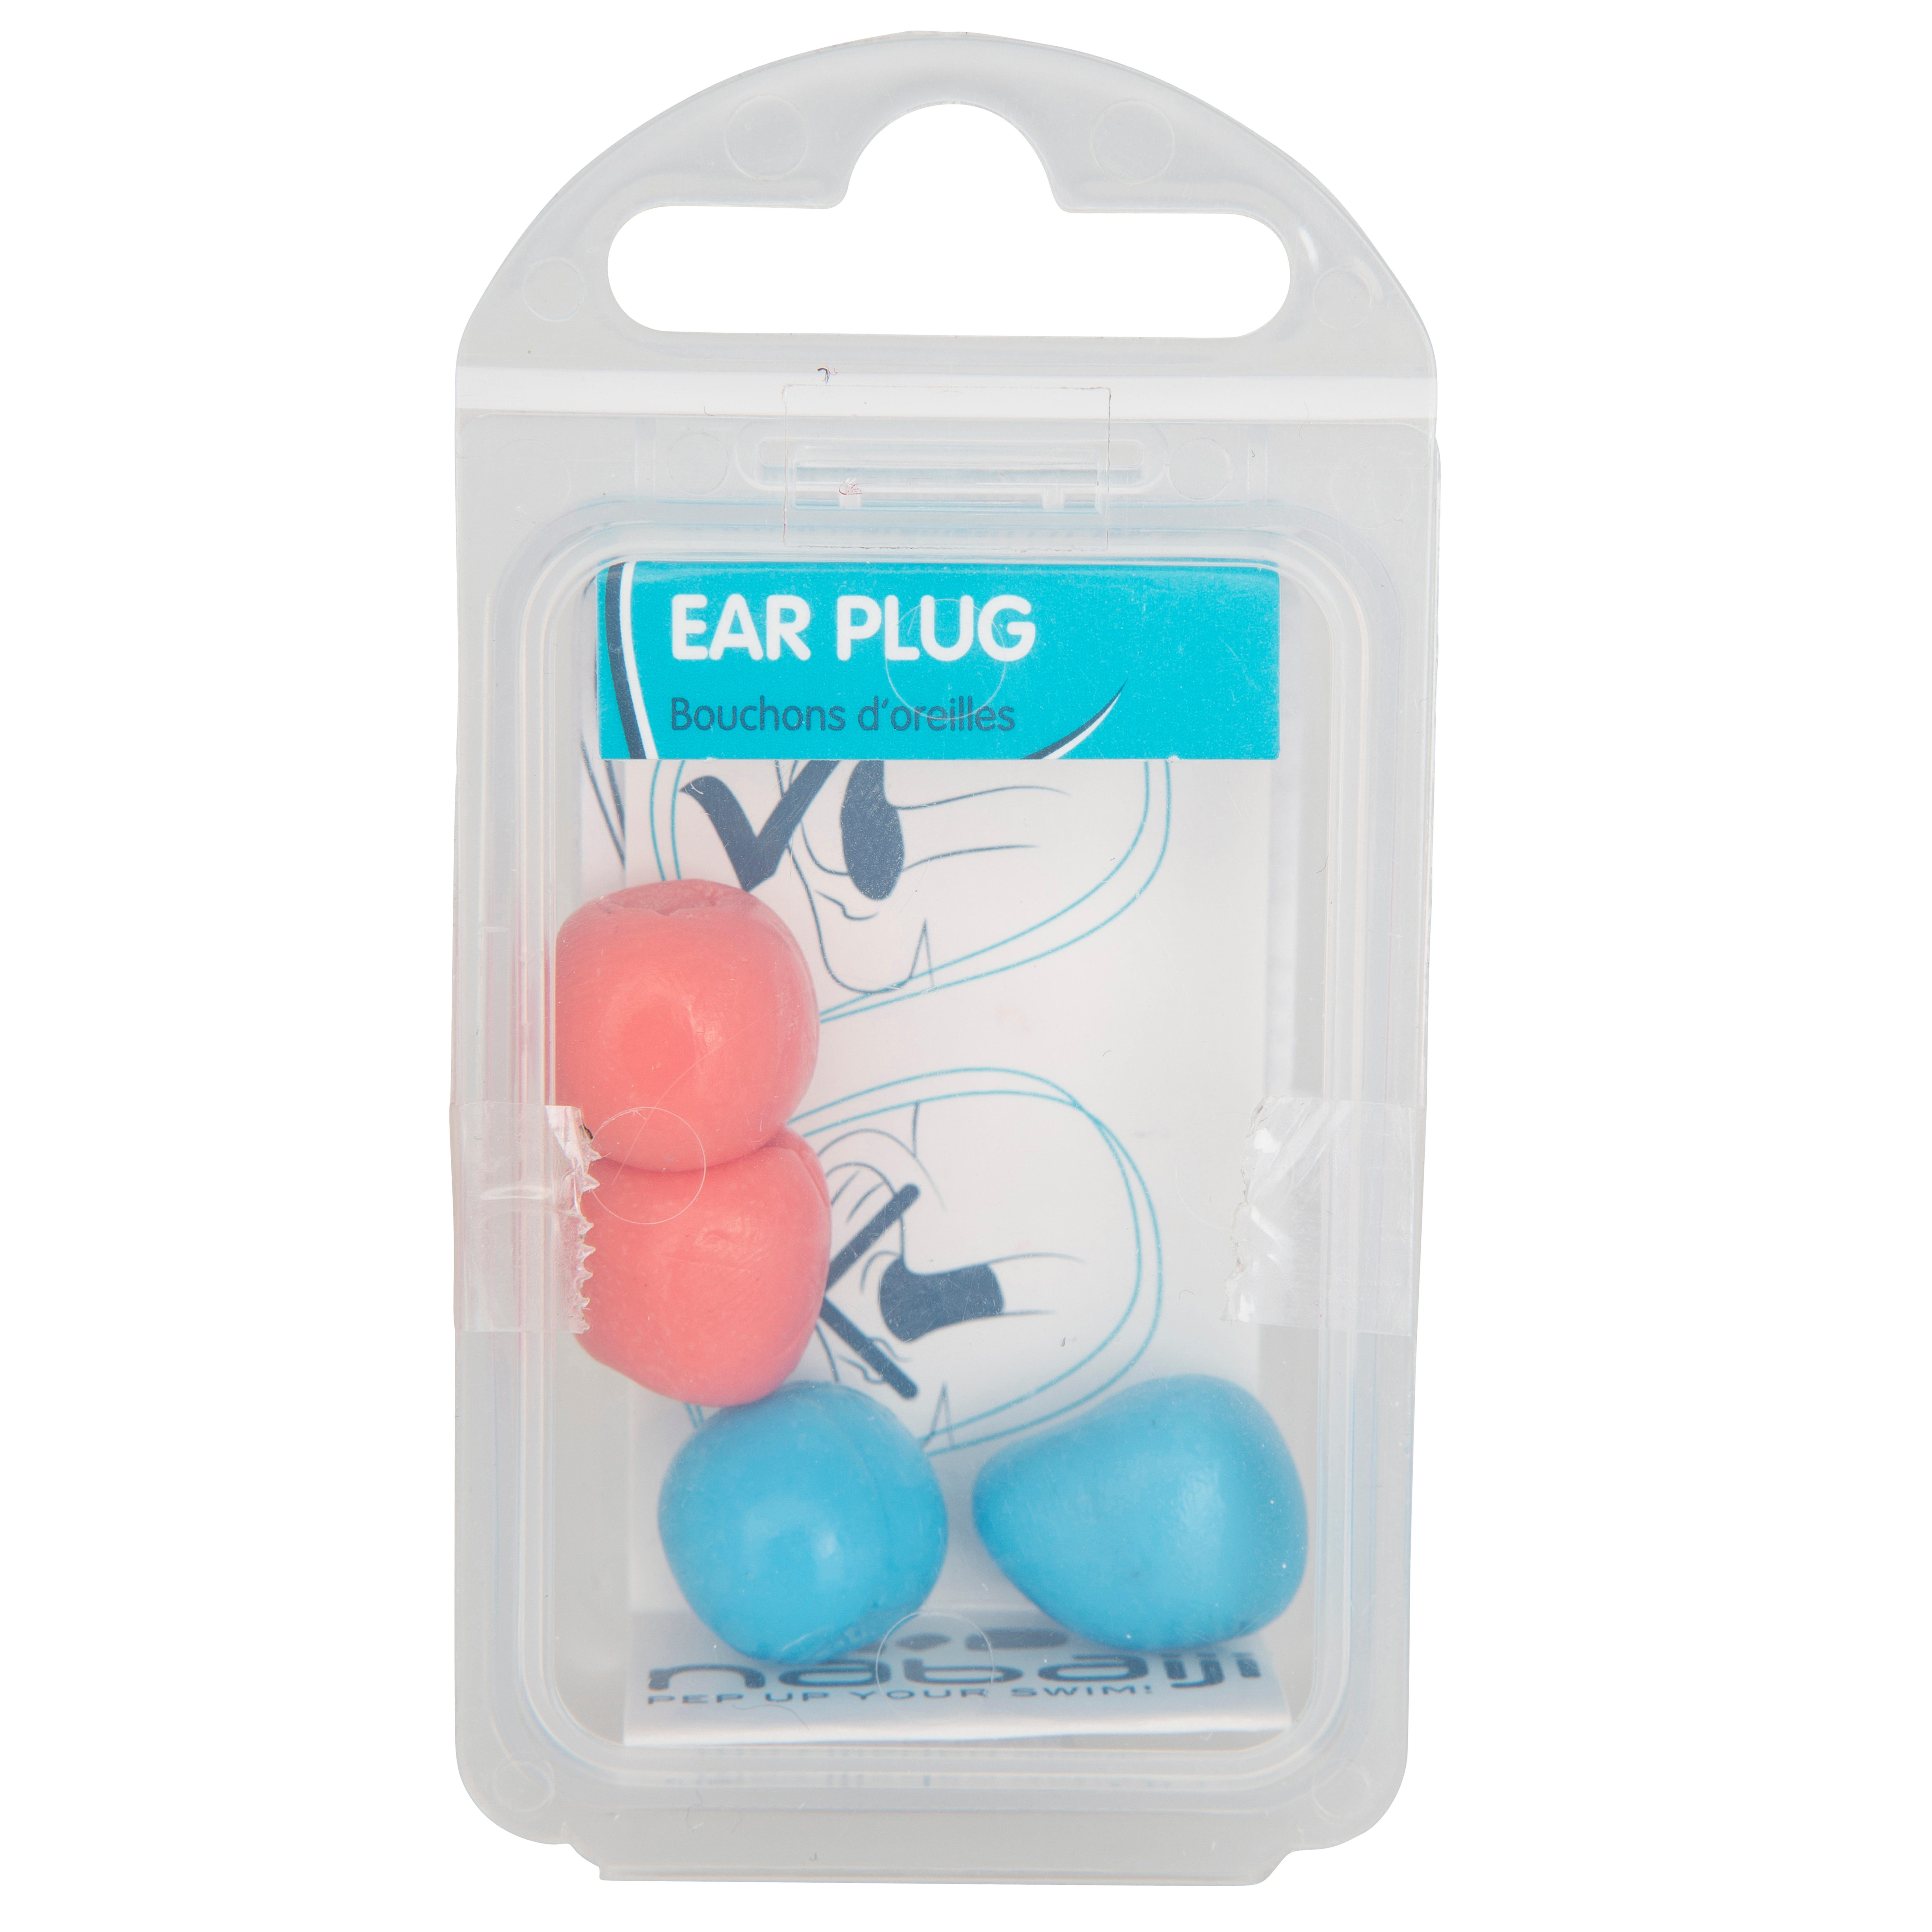 MALLEABLE THERMOPLASTIC SWIMMING EAR PLUGS BLUE AND PINK